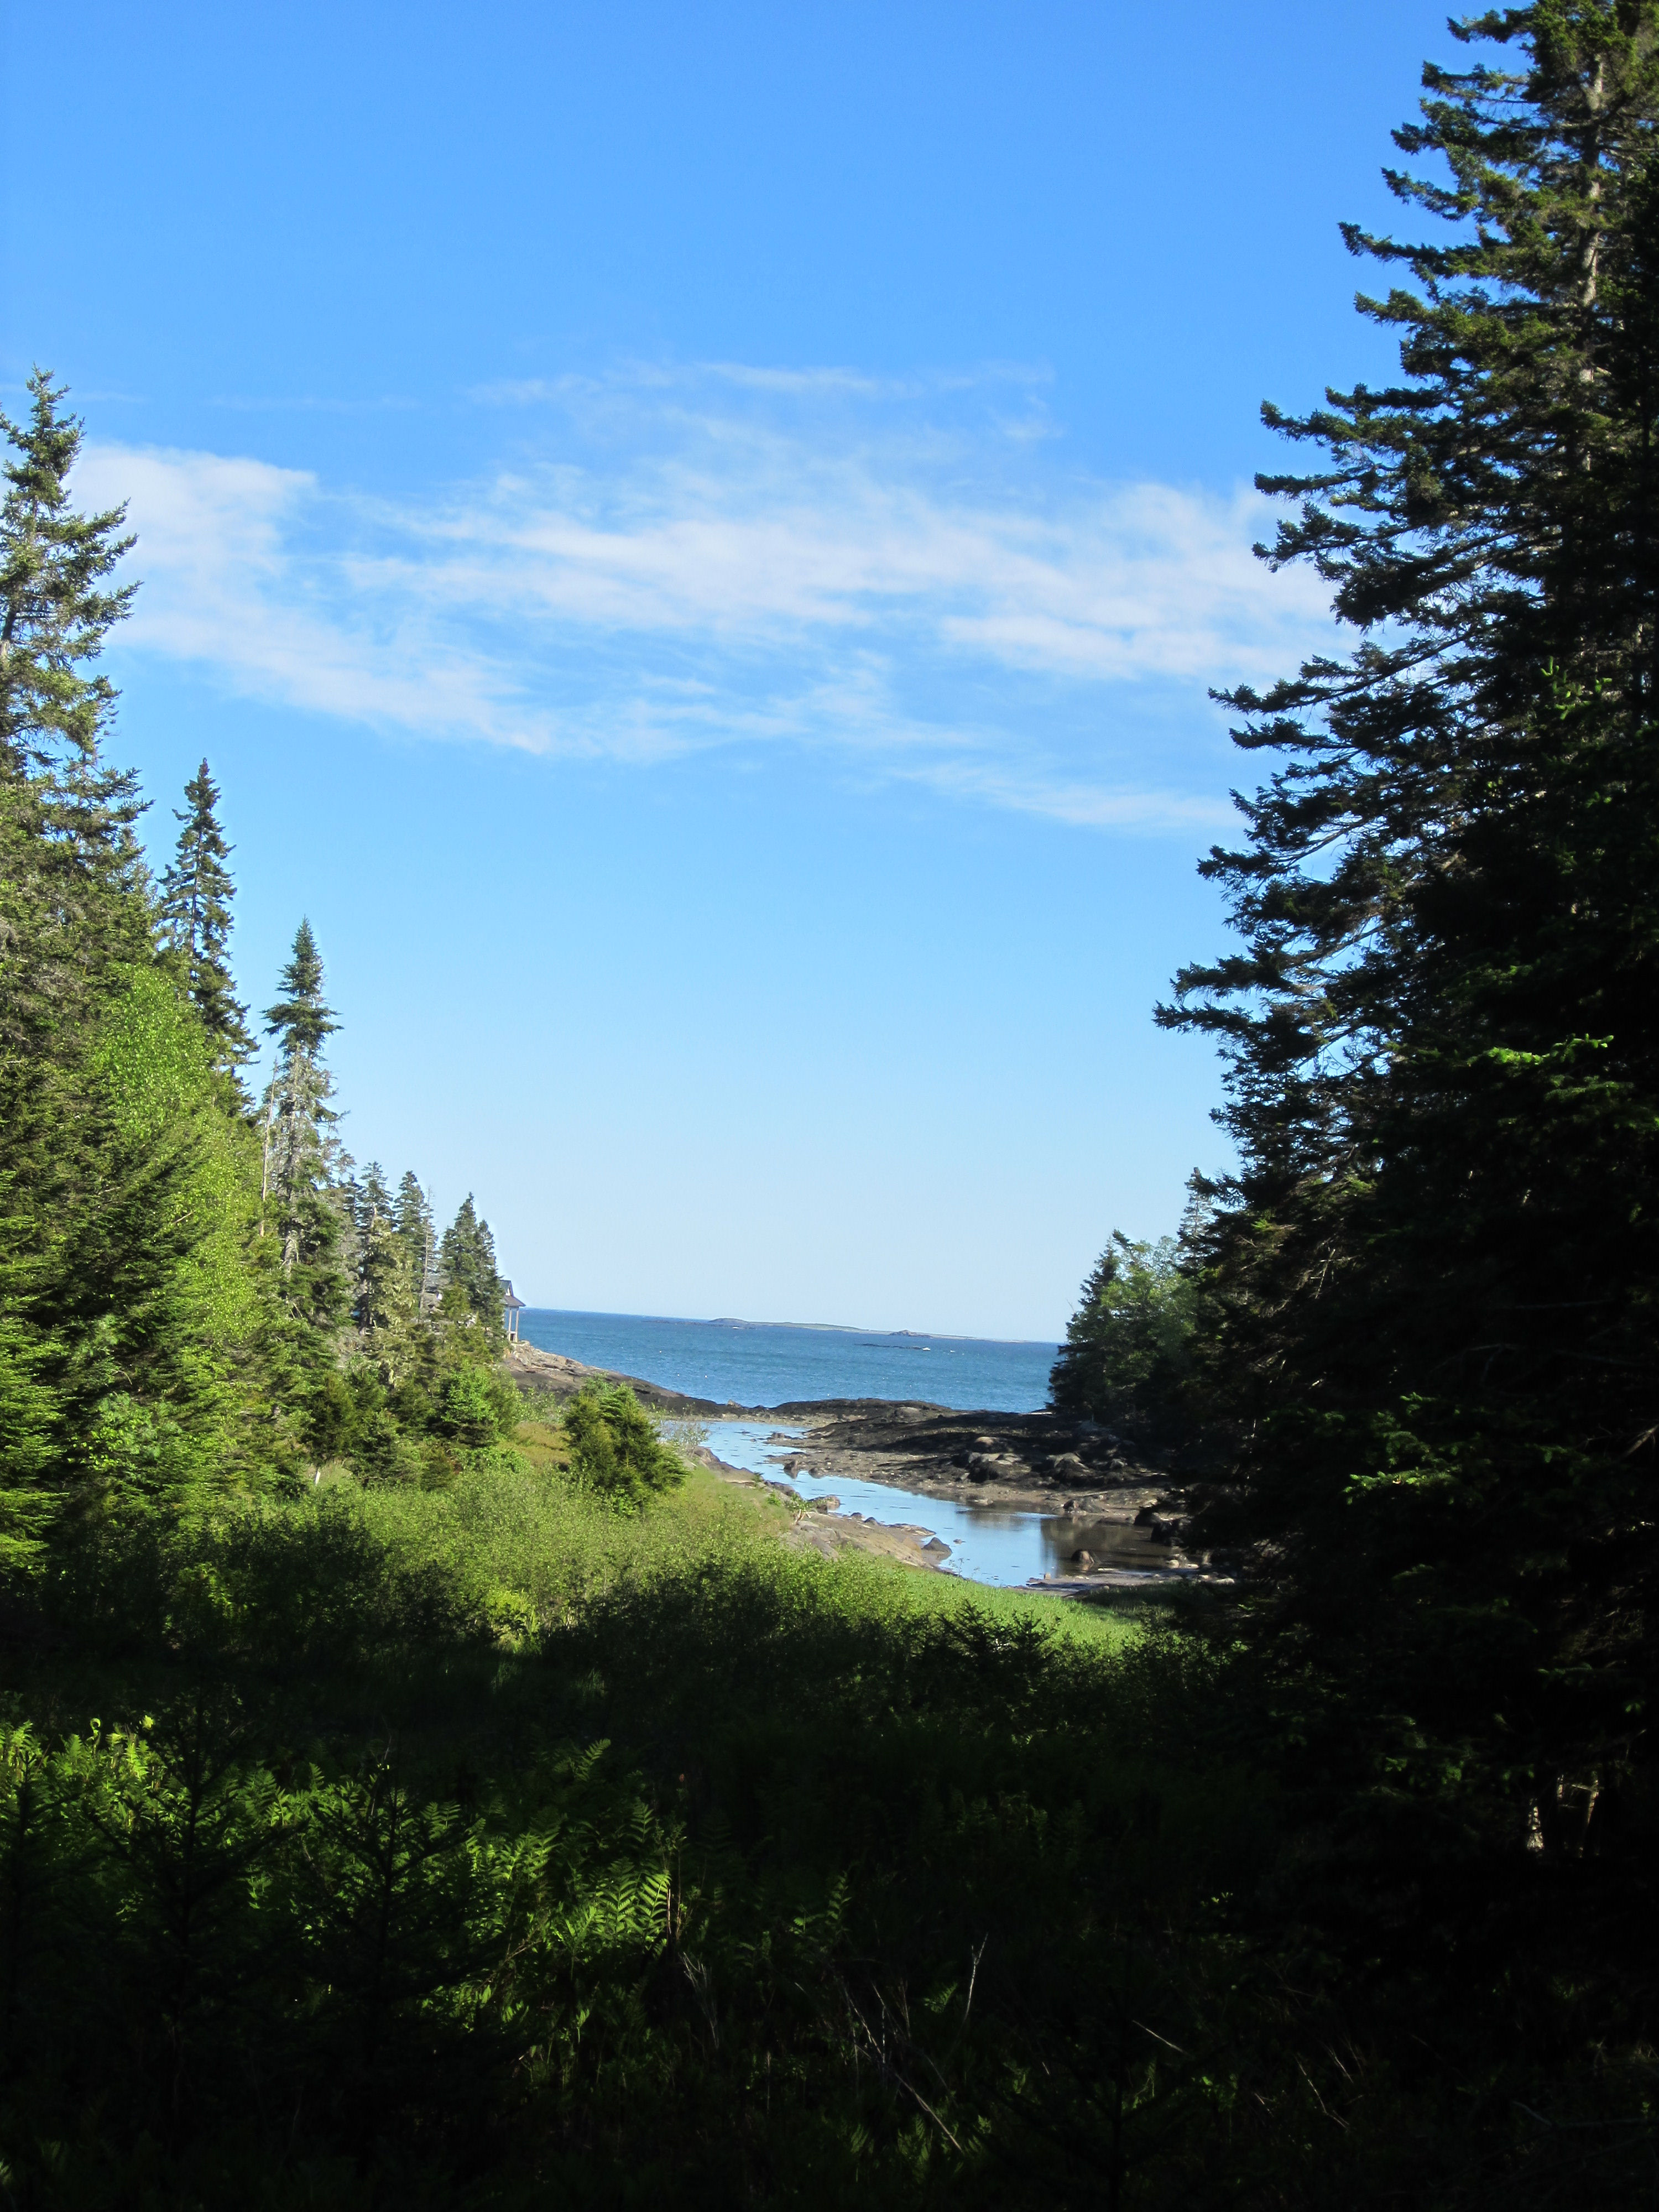 The view from Victorian shingle cottage on Ripley Point